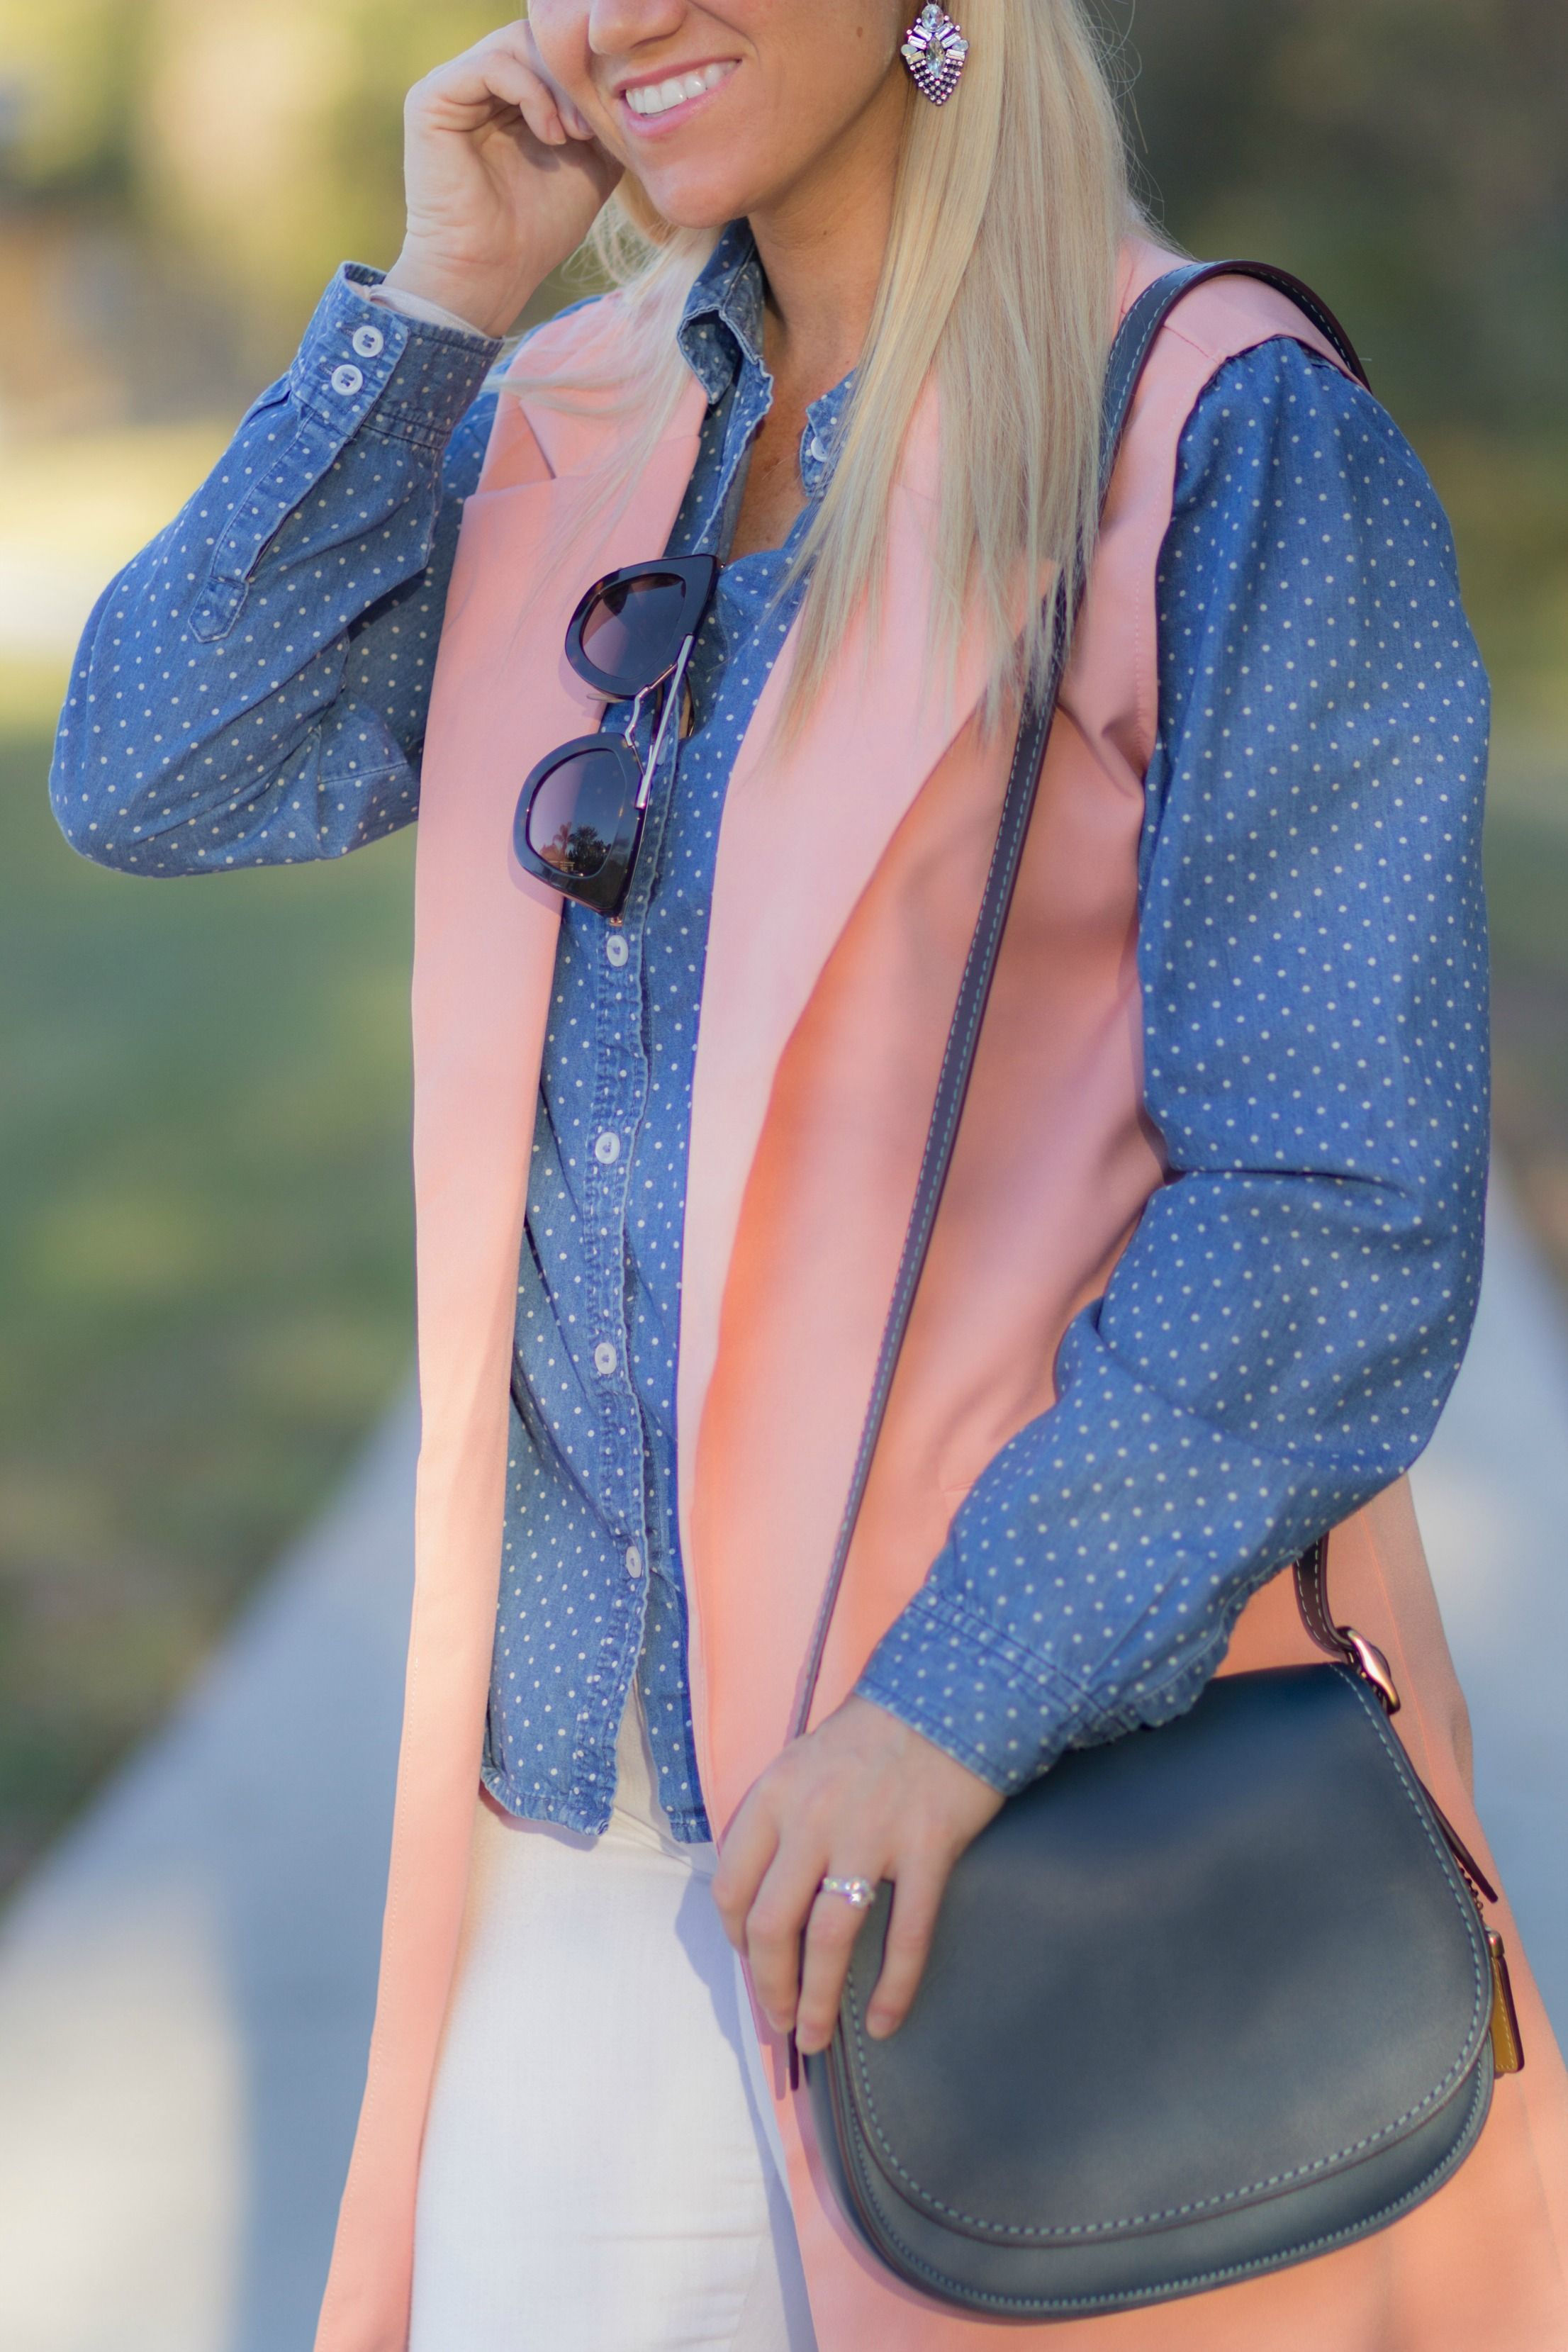 Coral pink duster vest + polka dotted chambray